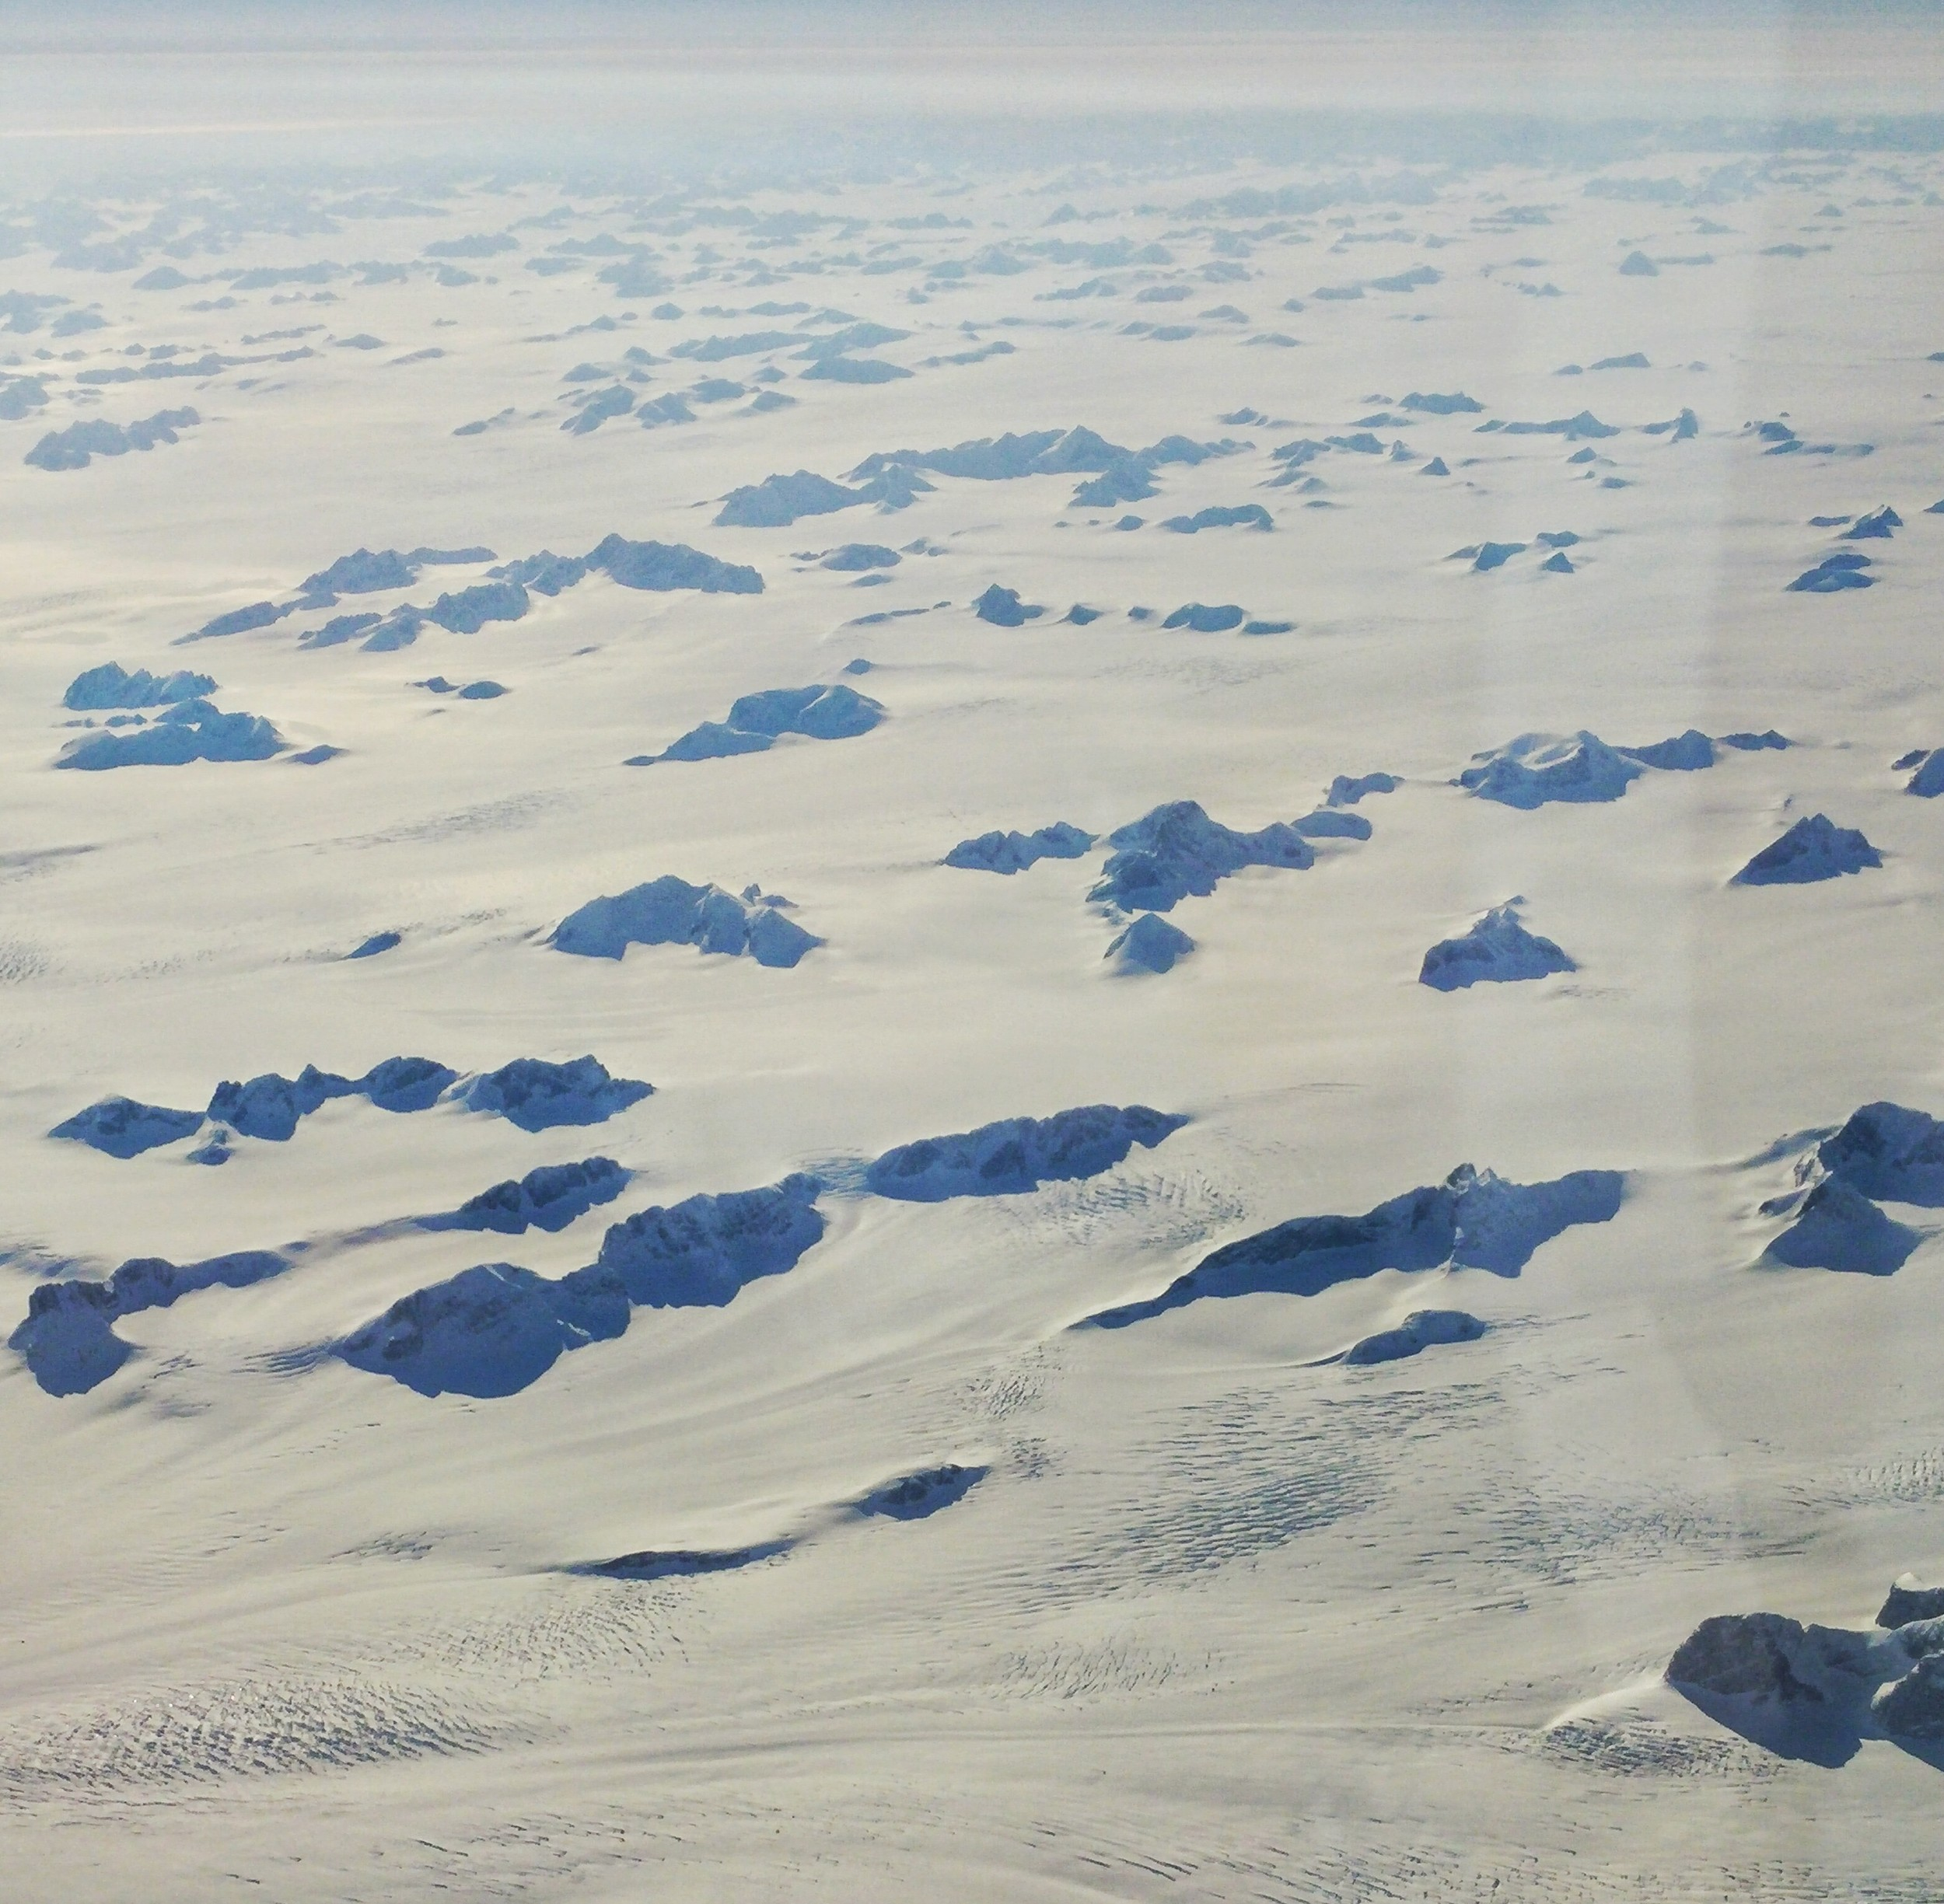 Looking down on Iceland during our flight back to the Western Hemisphere.